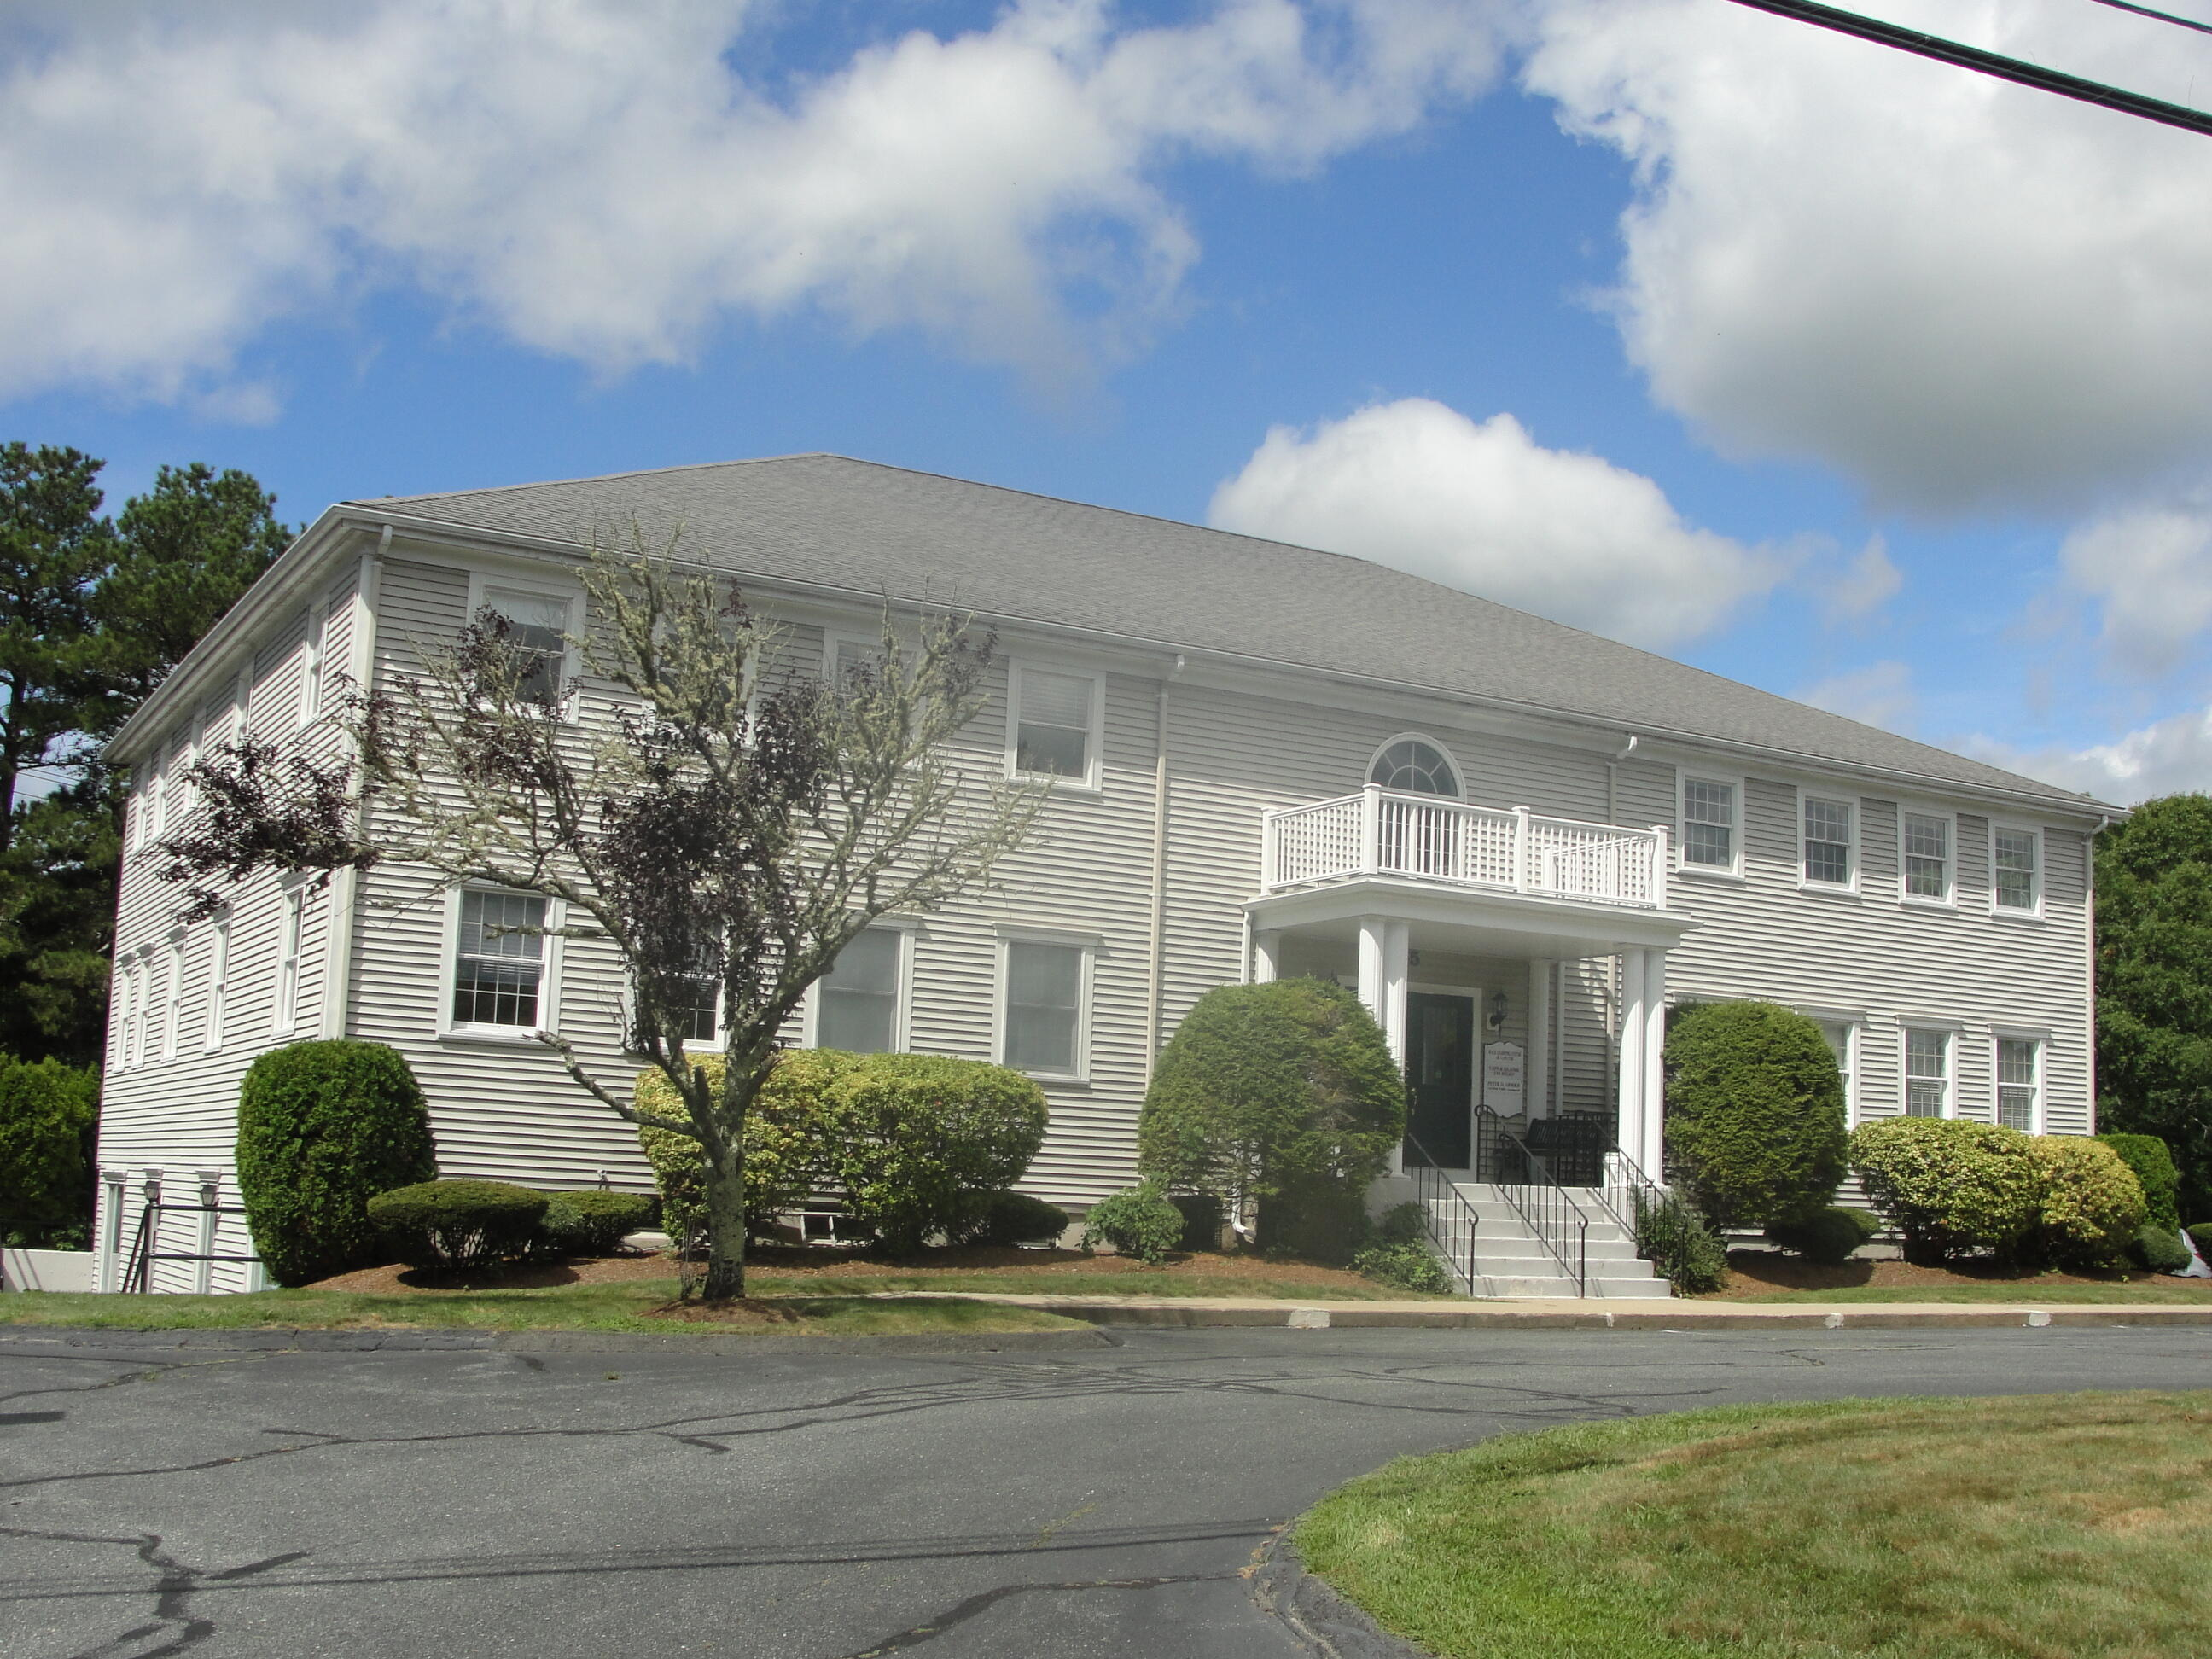 25 Mid-Tech Drive, West Yarmouth MA, 02673 details